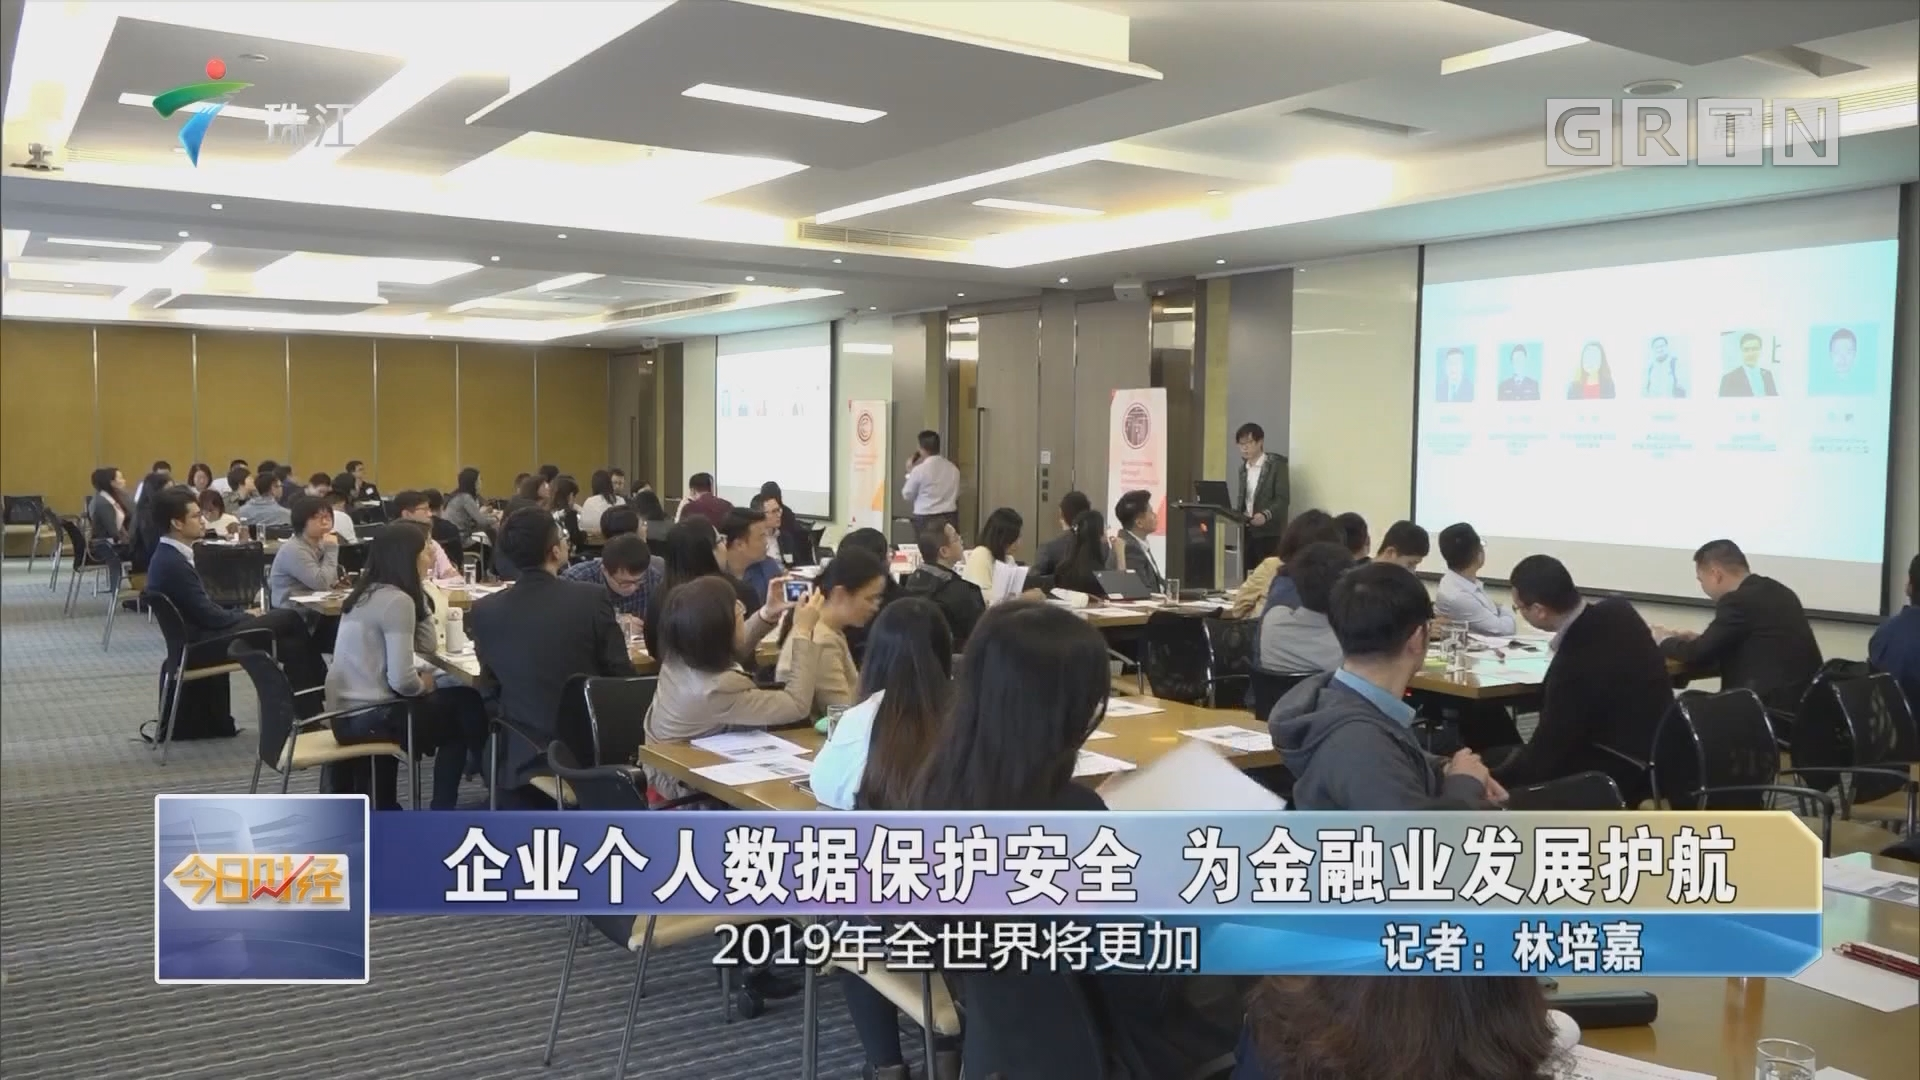 企业个人数据保护安全 为金融业发展护航